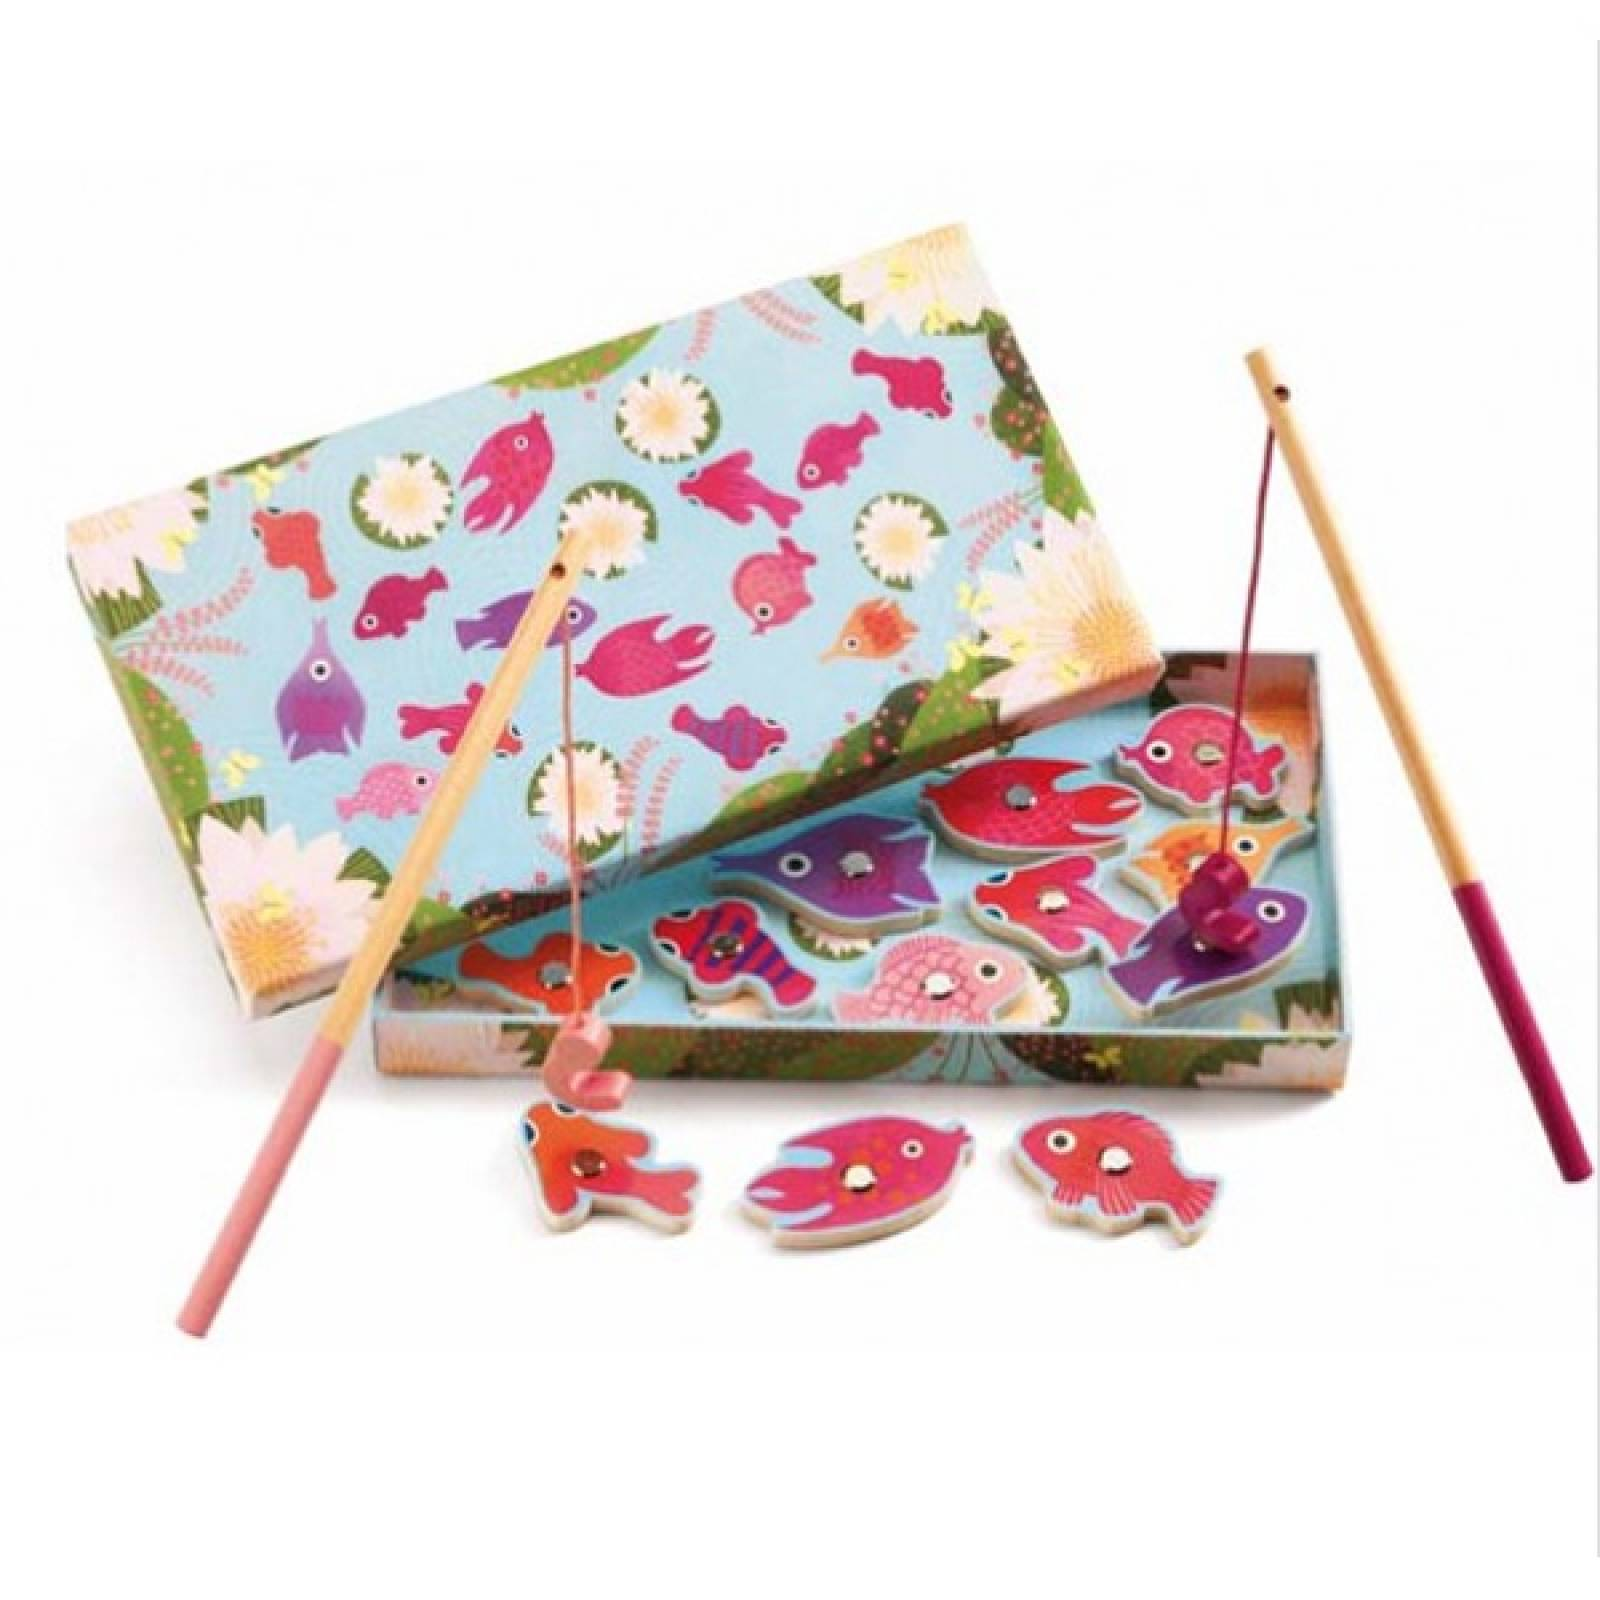 Fishing Lily Magnetic Fishing Game By Djeco